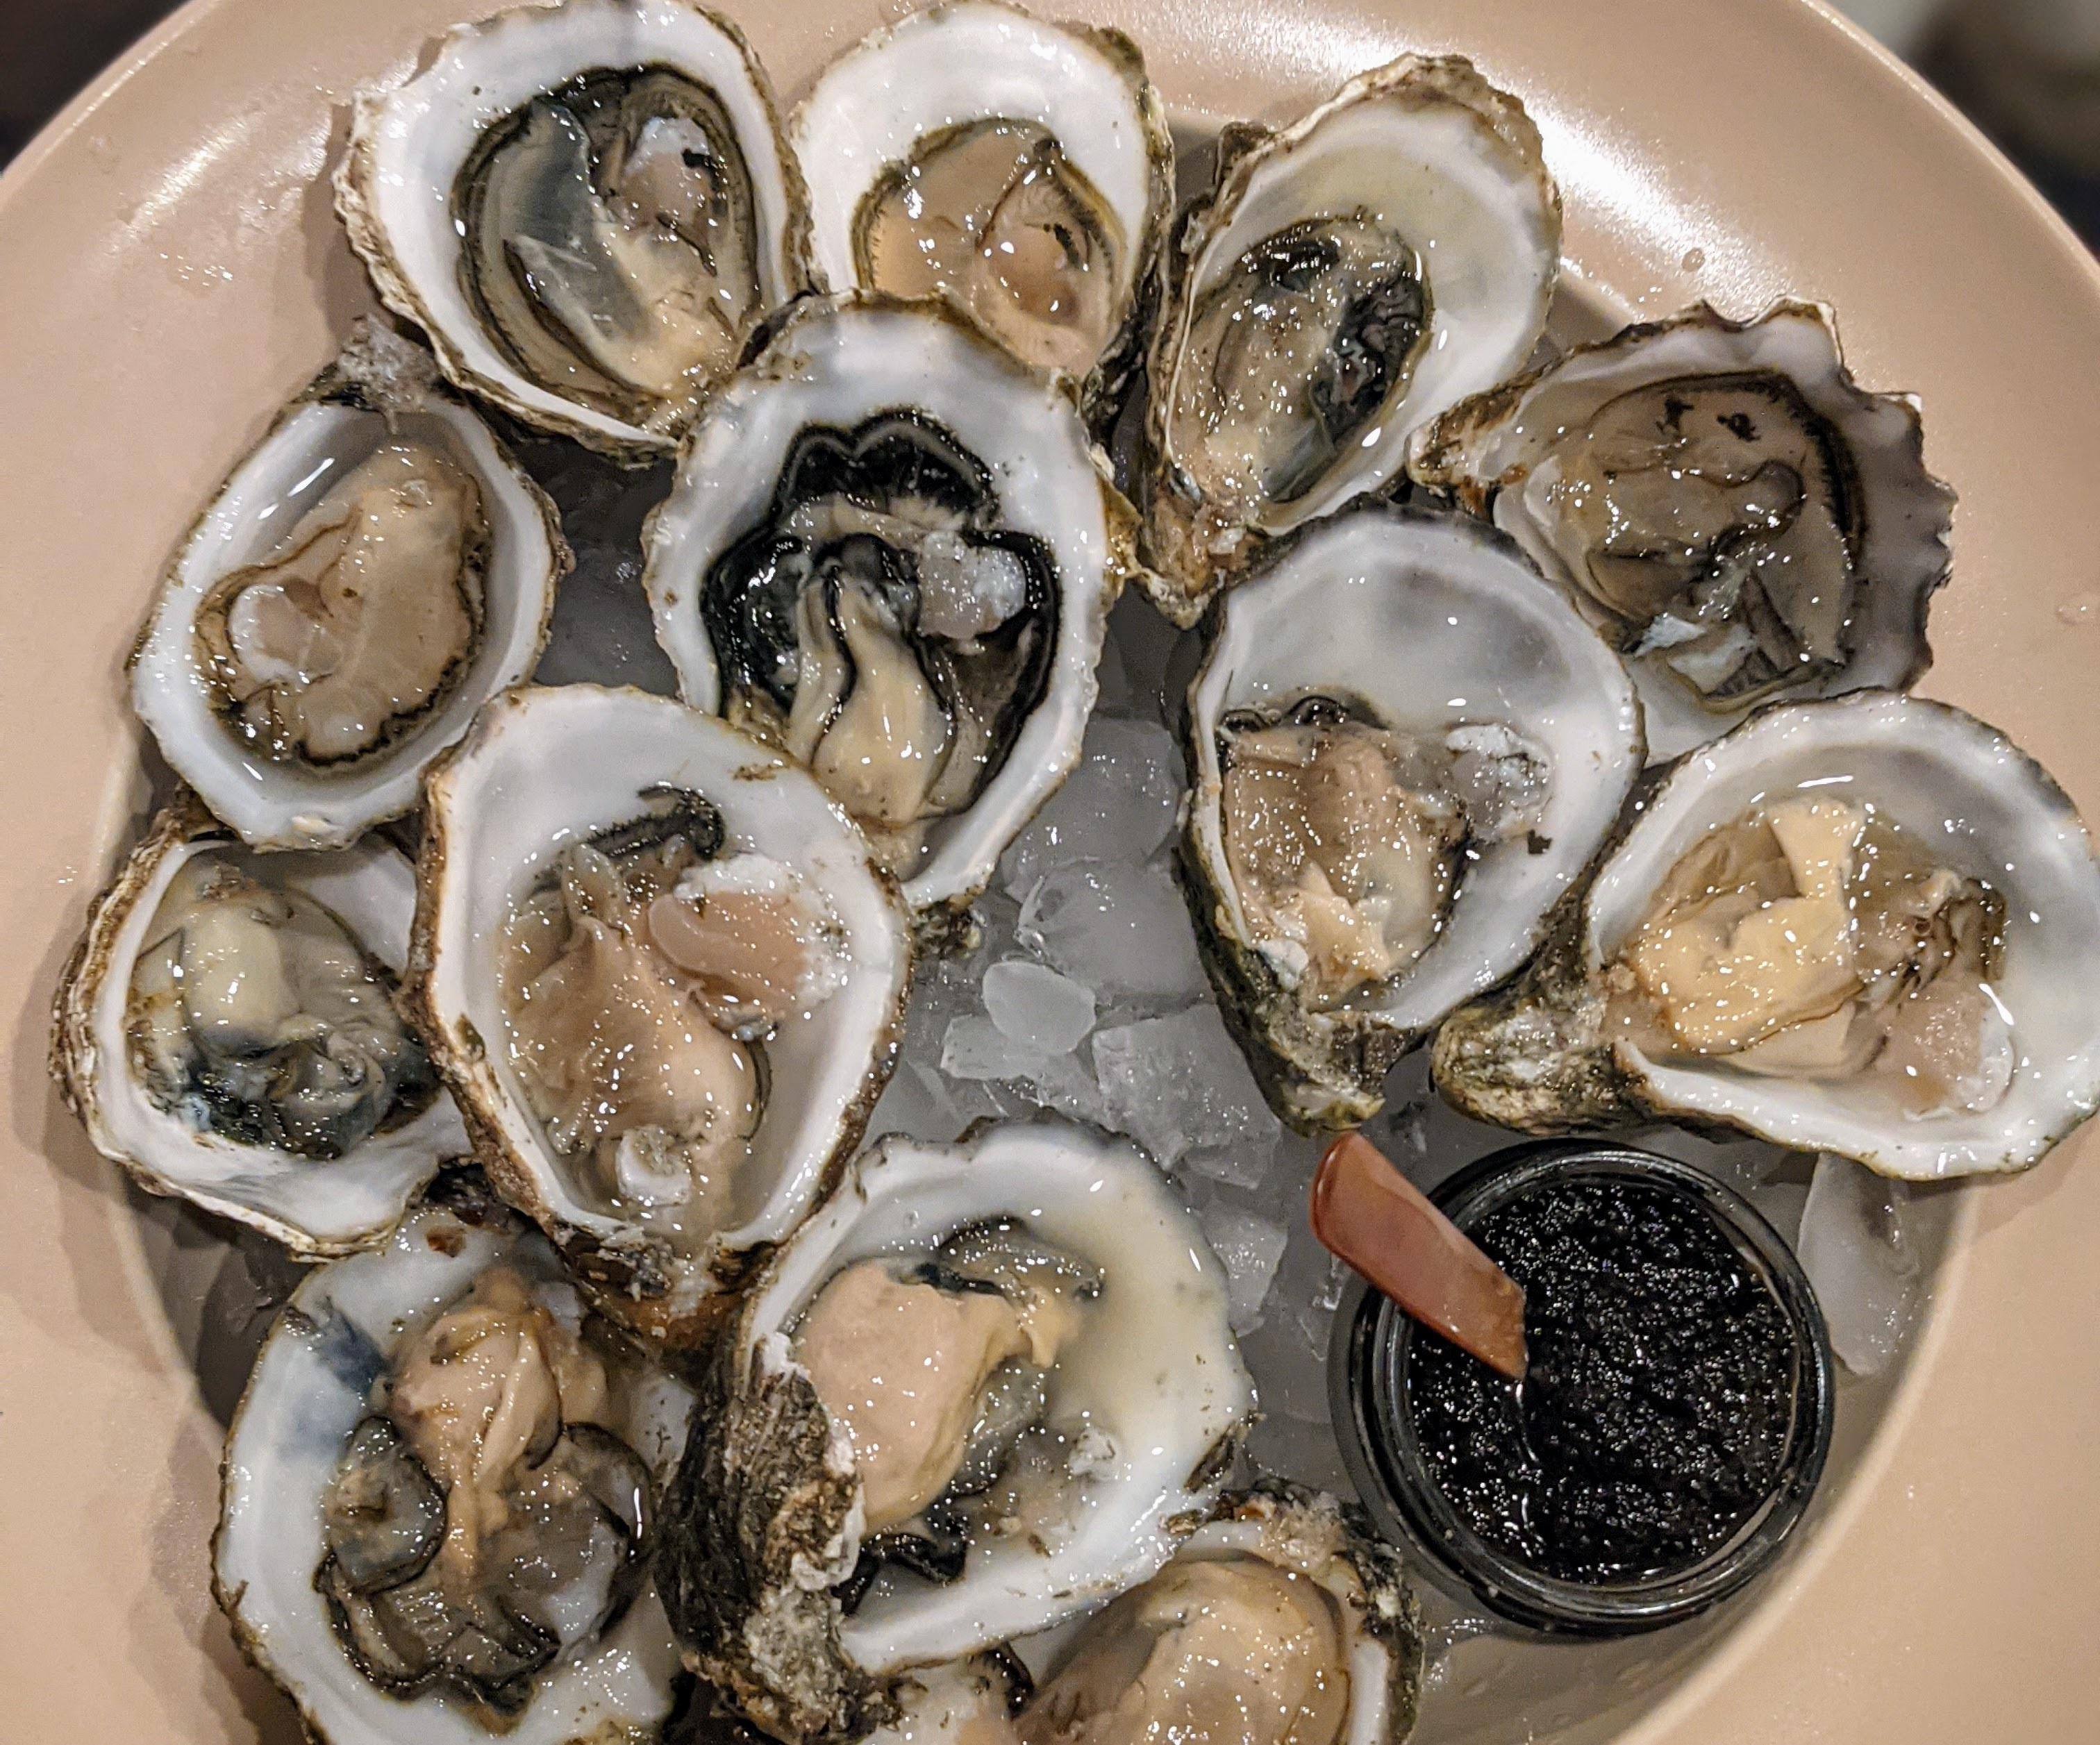 For extra fresh Pacific oysters you can shuck at home: Jolly Oysterette.